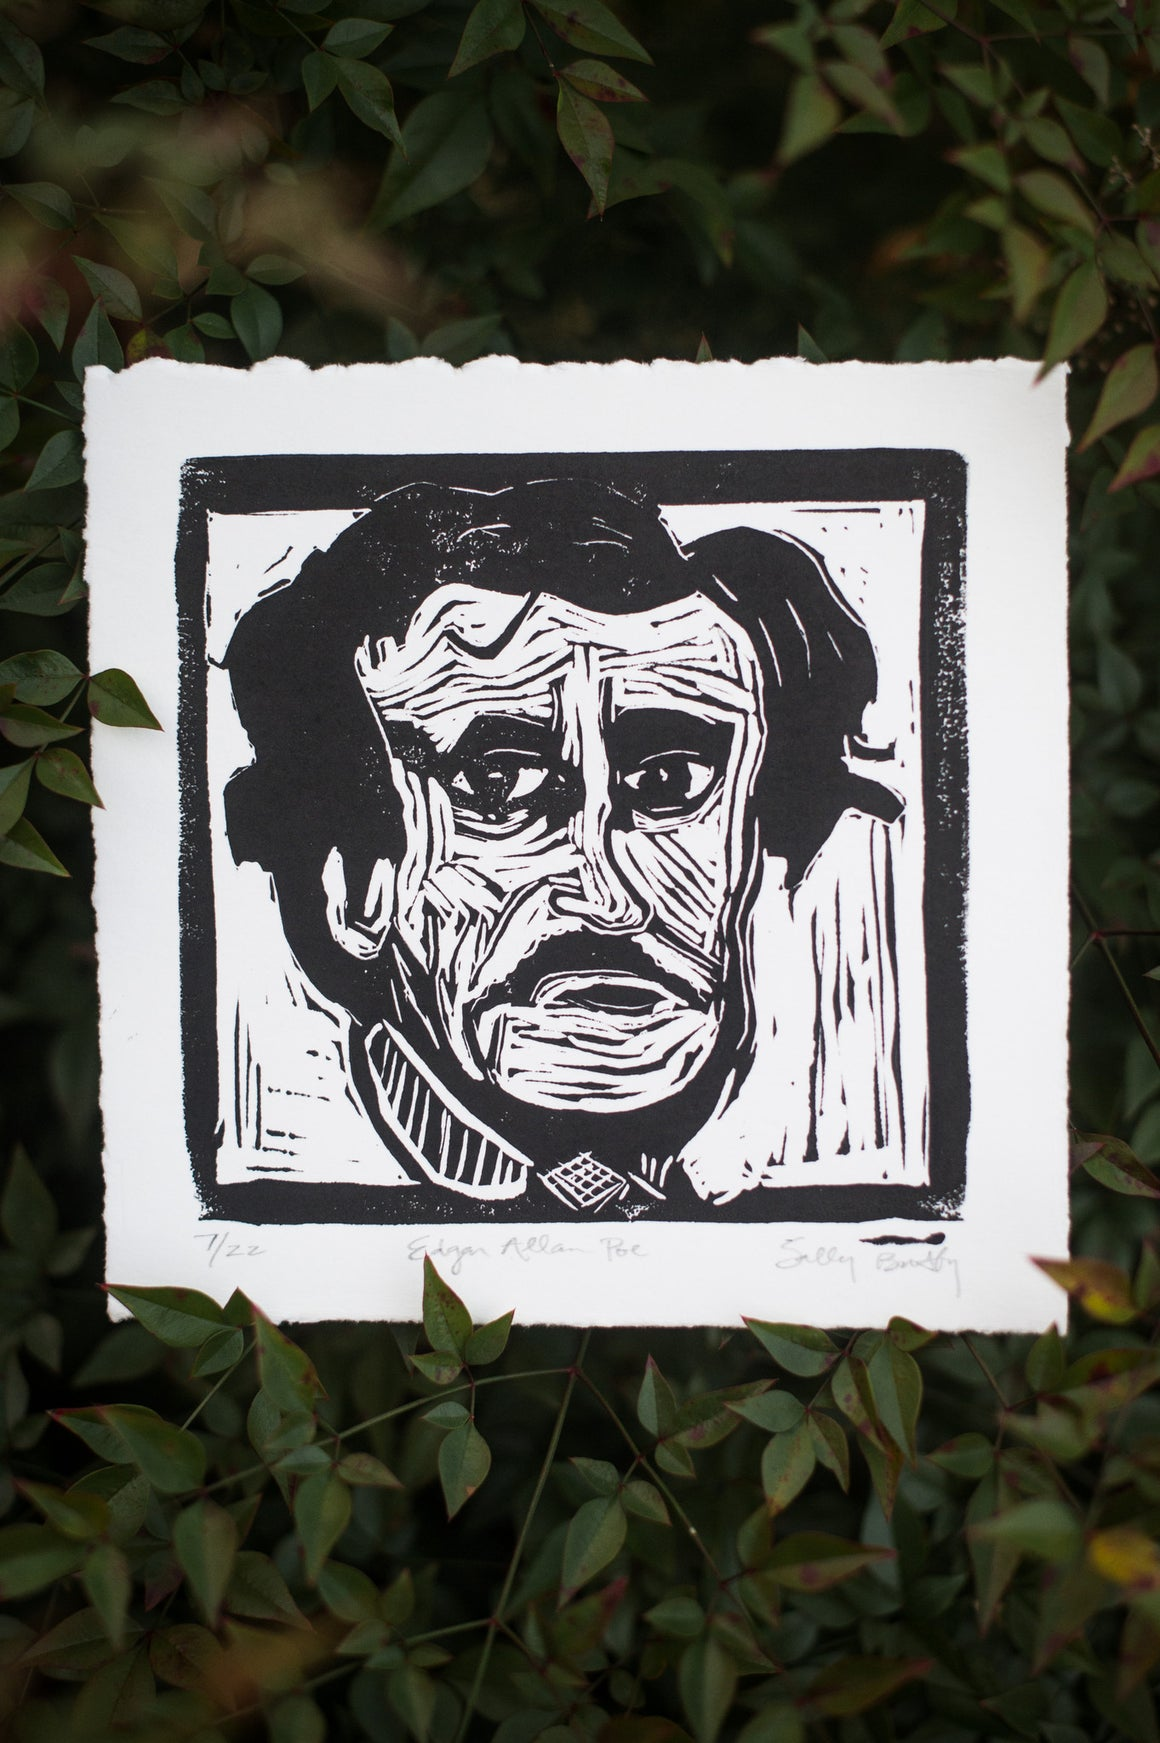 Edgar Allan Poe Linocut Print, Black and White